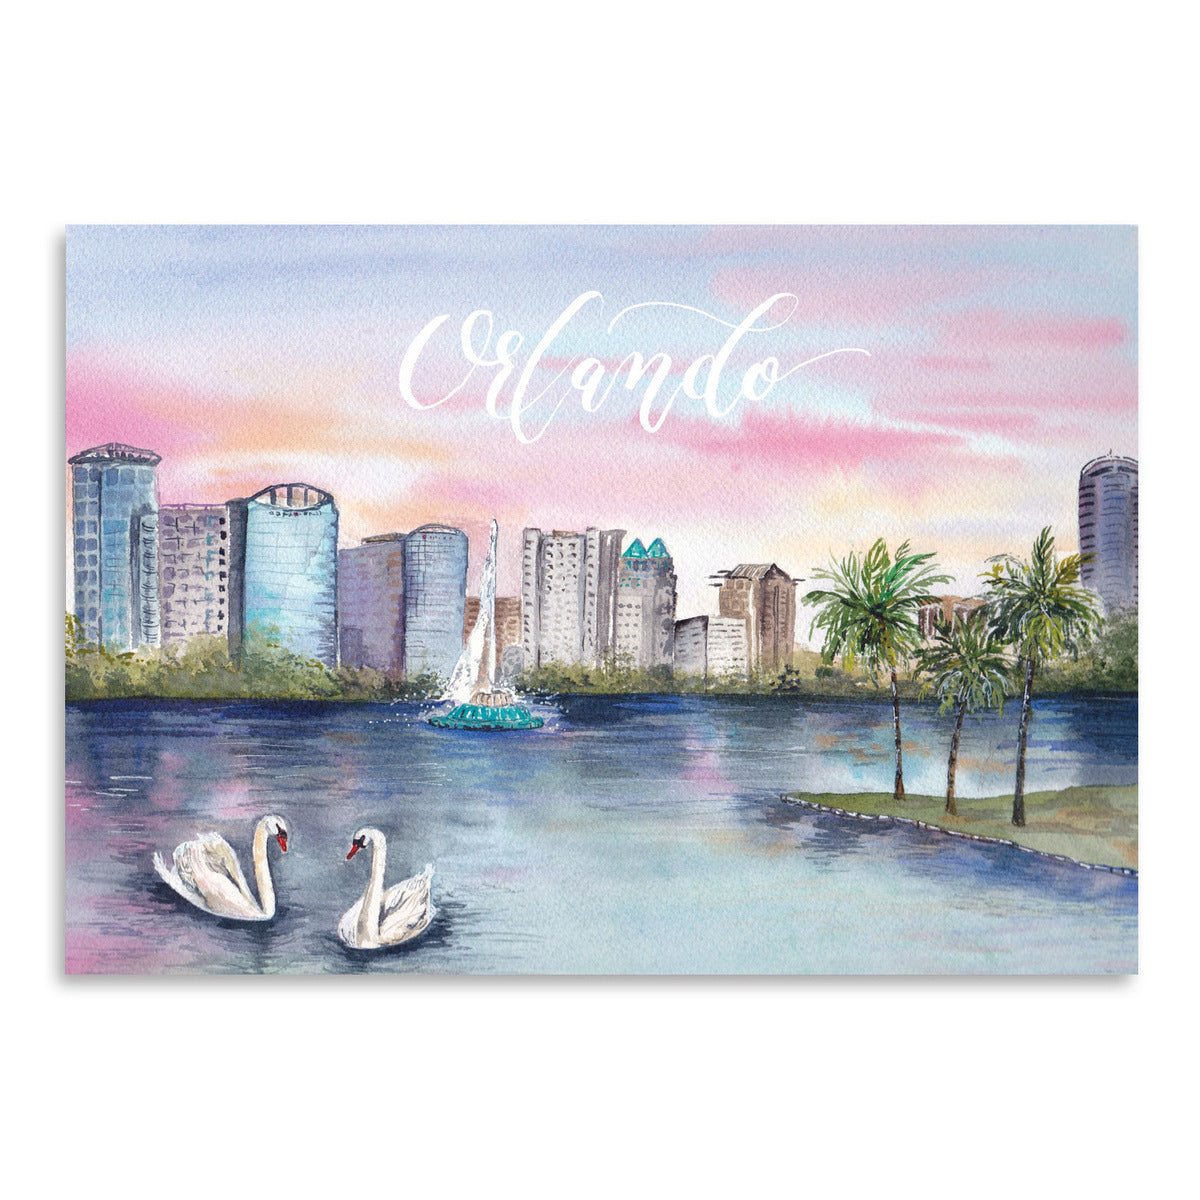 Orlando by Cami Monet - Art Print - Americanflat